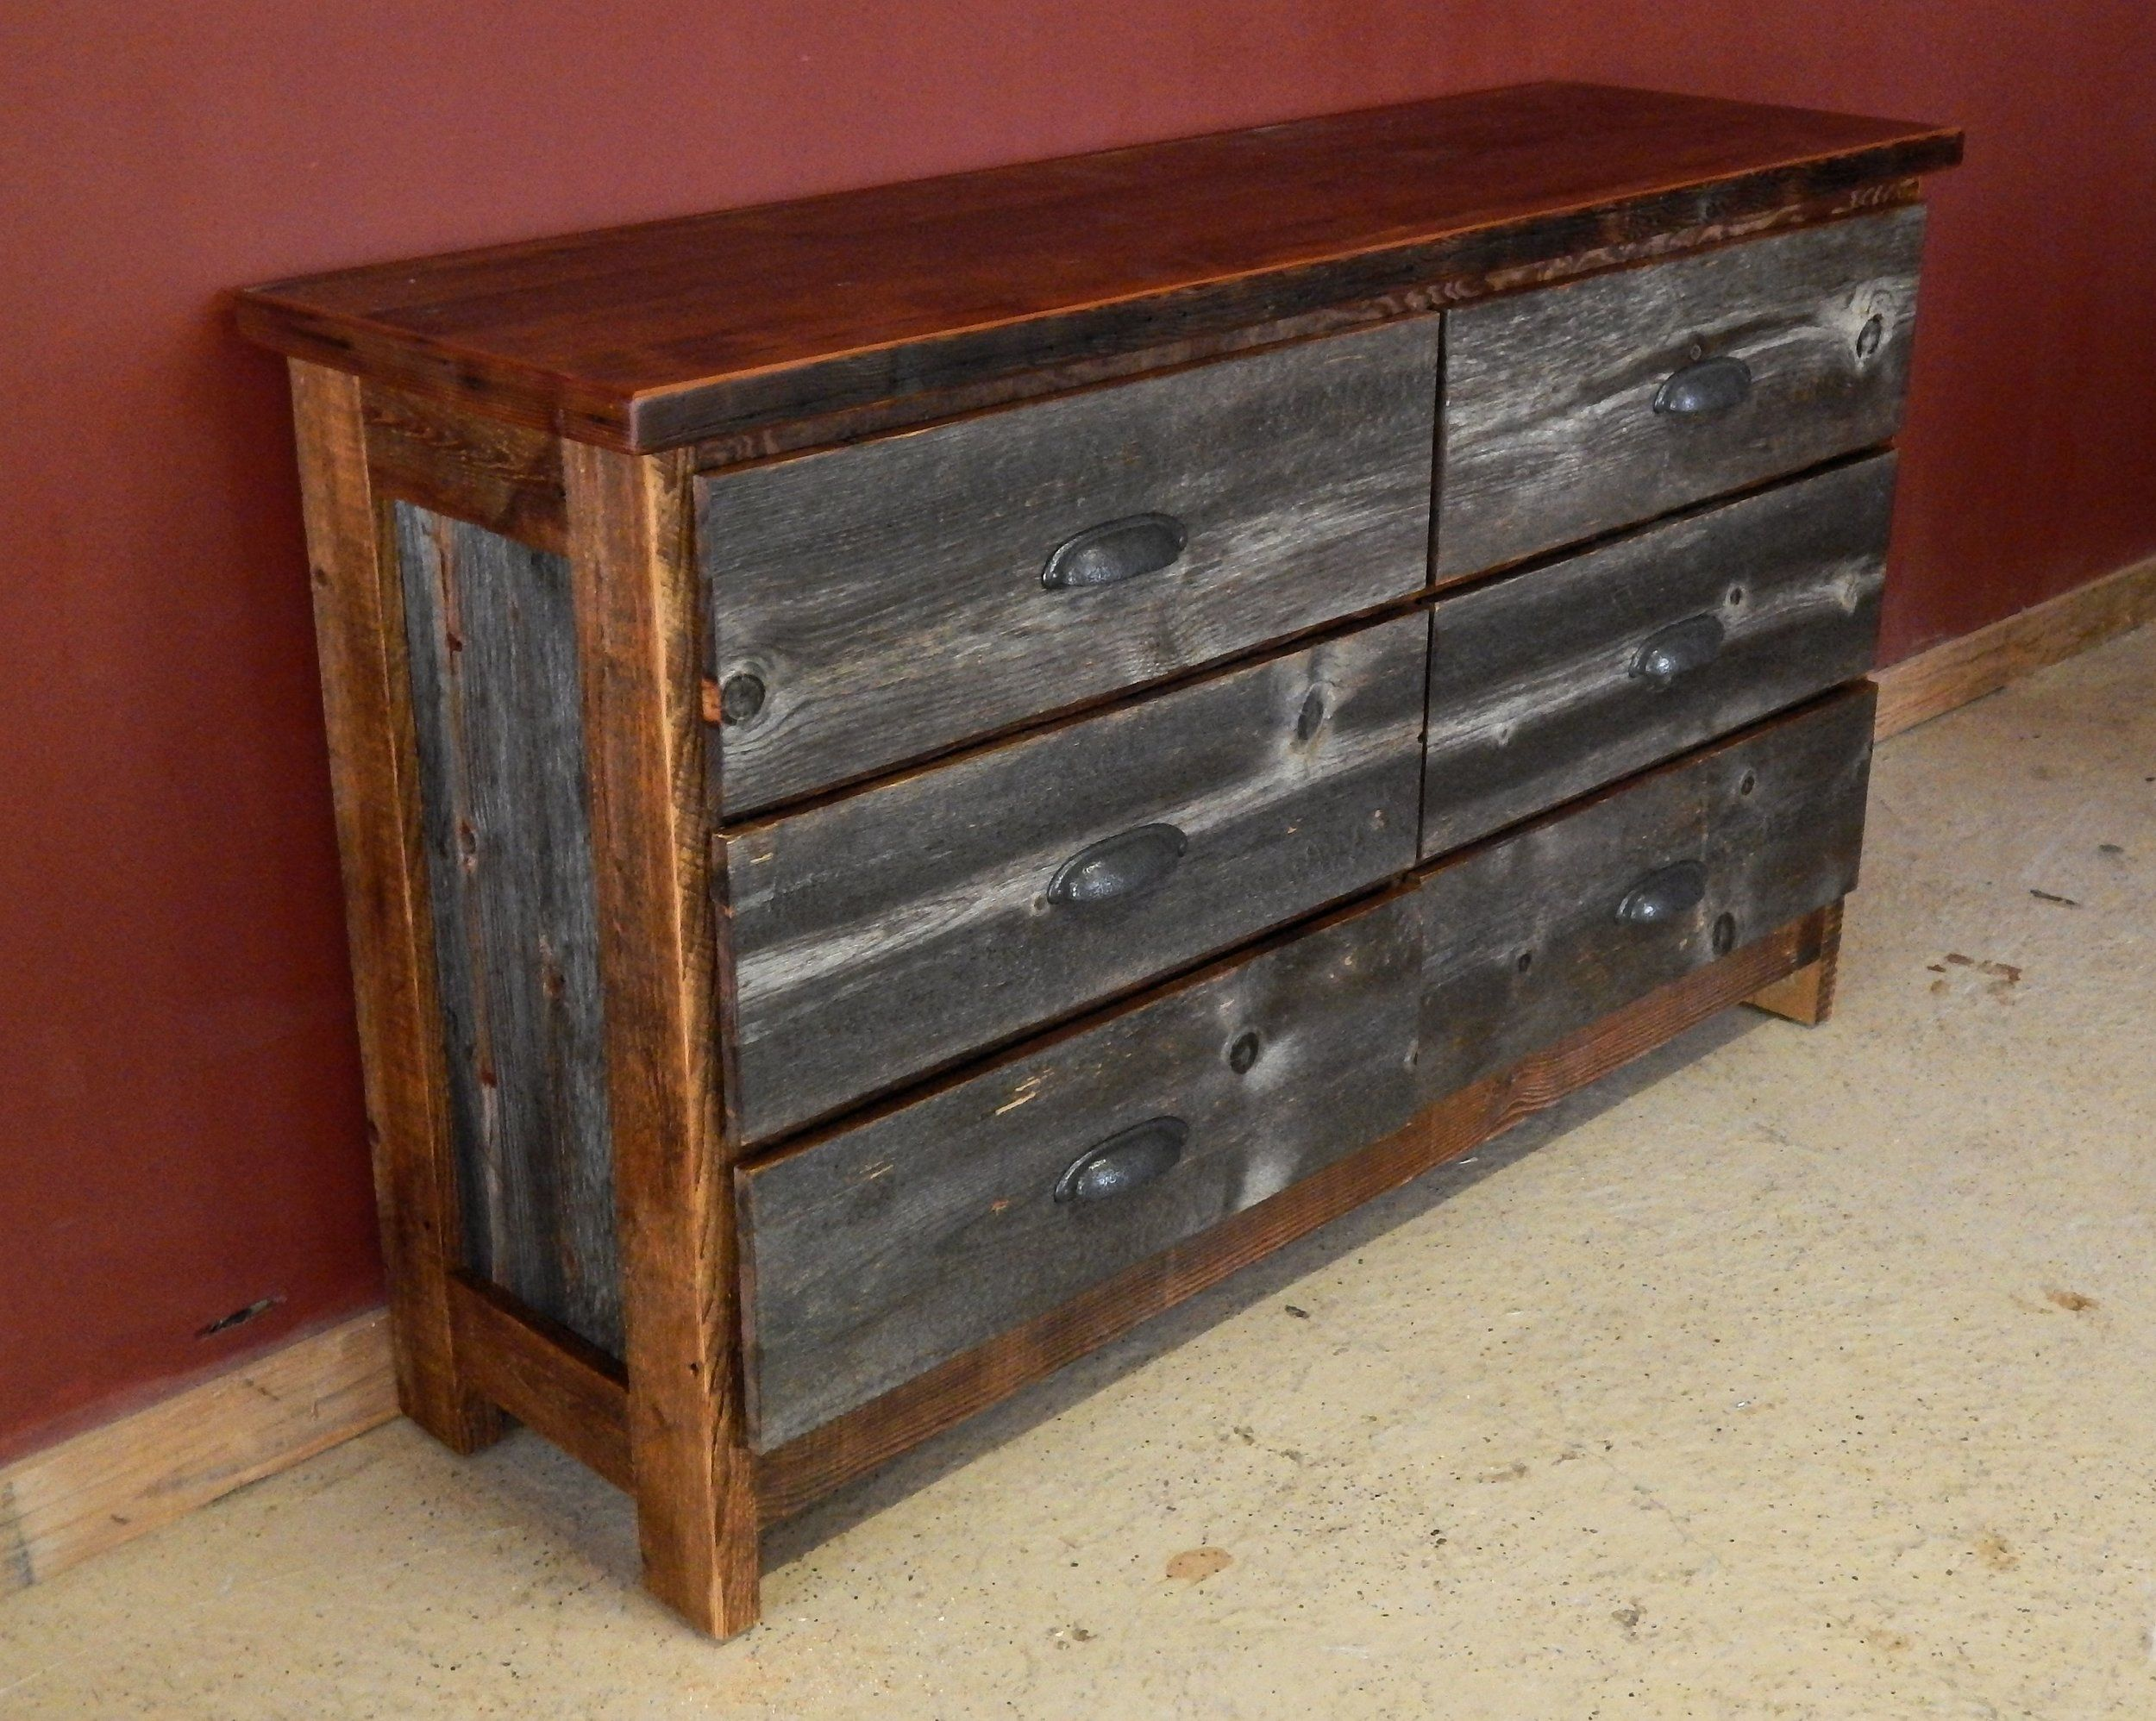 interior sale antique grey living dresser room your minimalist traditional furniture weathered decor drawer wood distressed for with